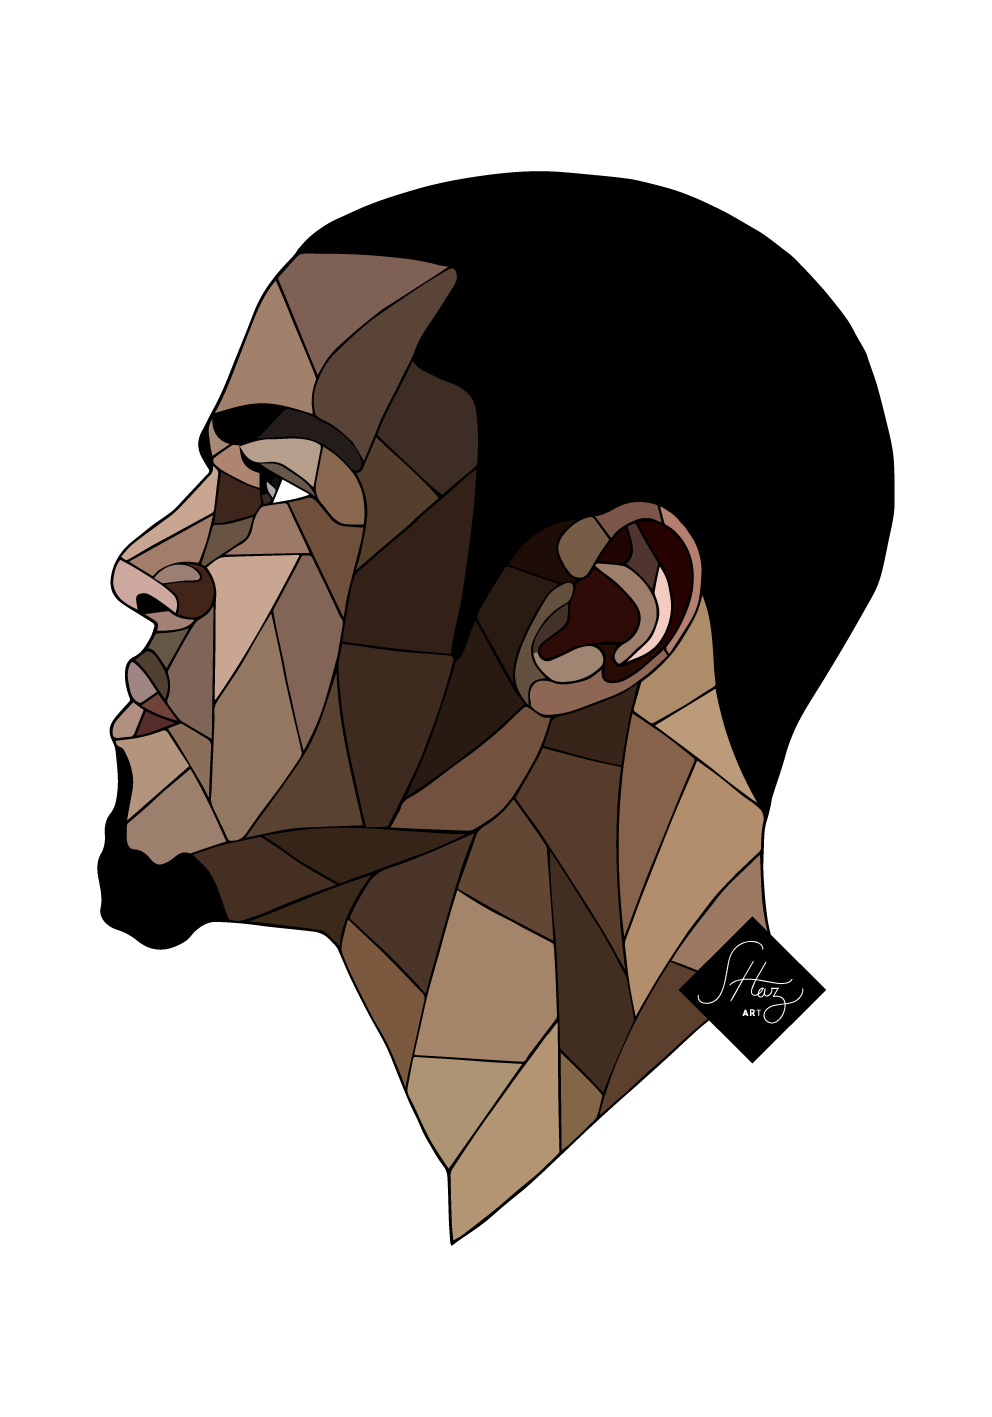 Shaz Art - J Cole.png